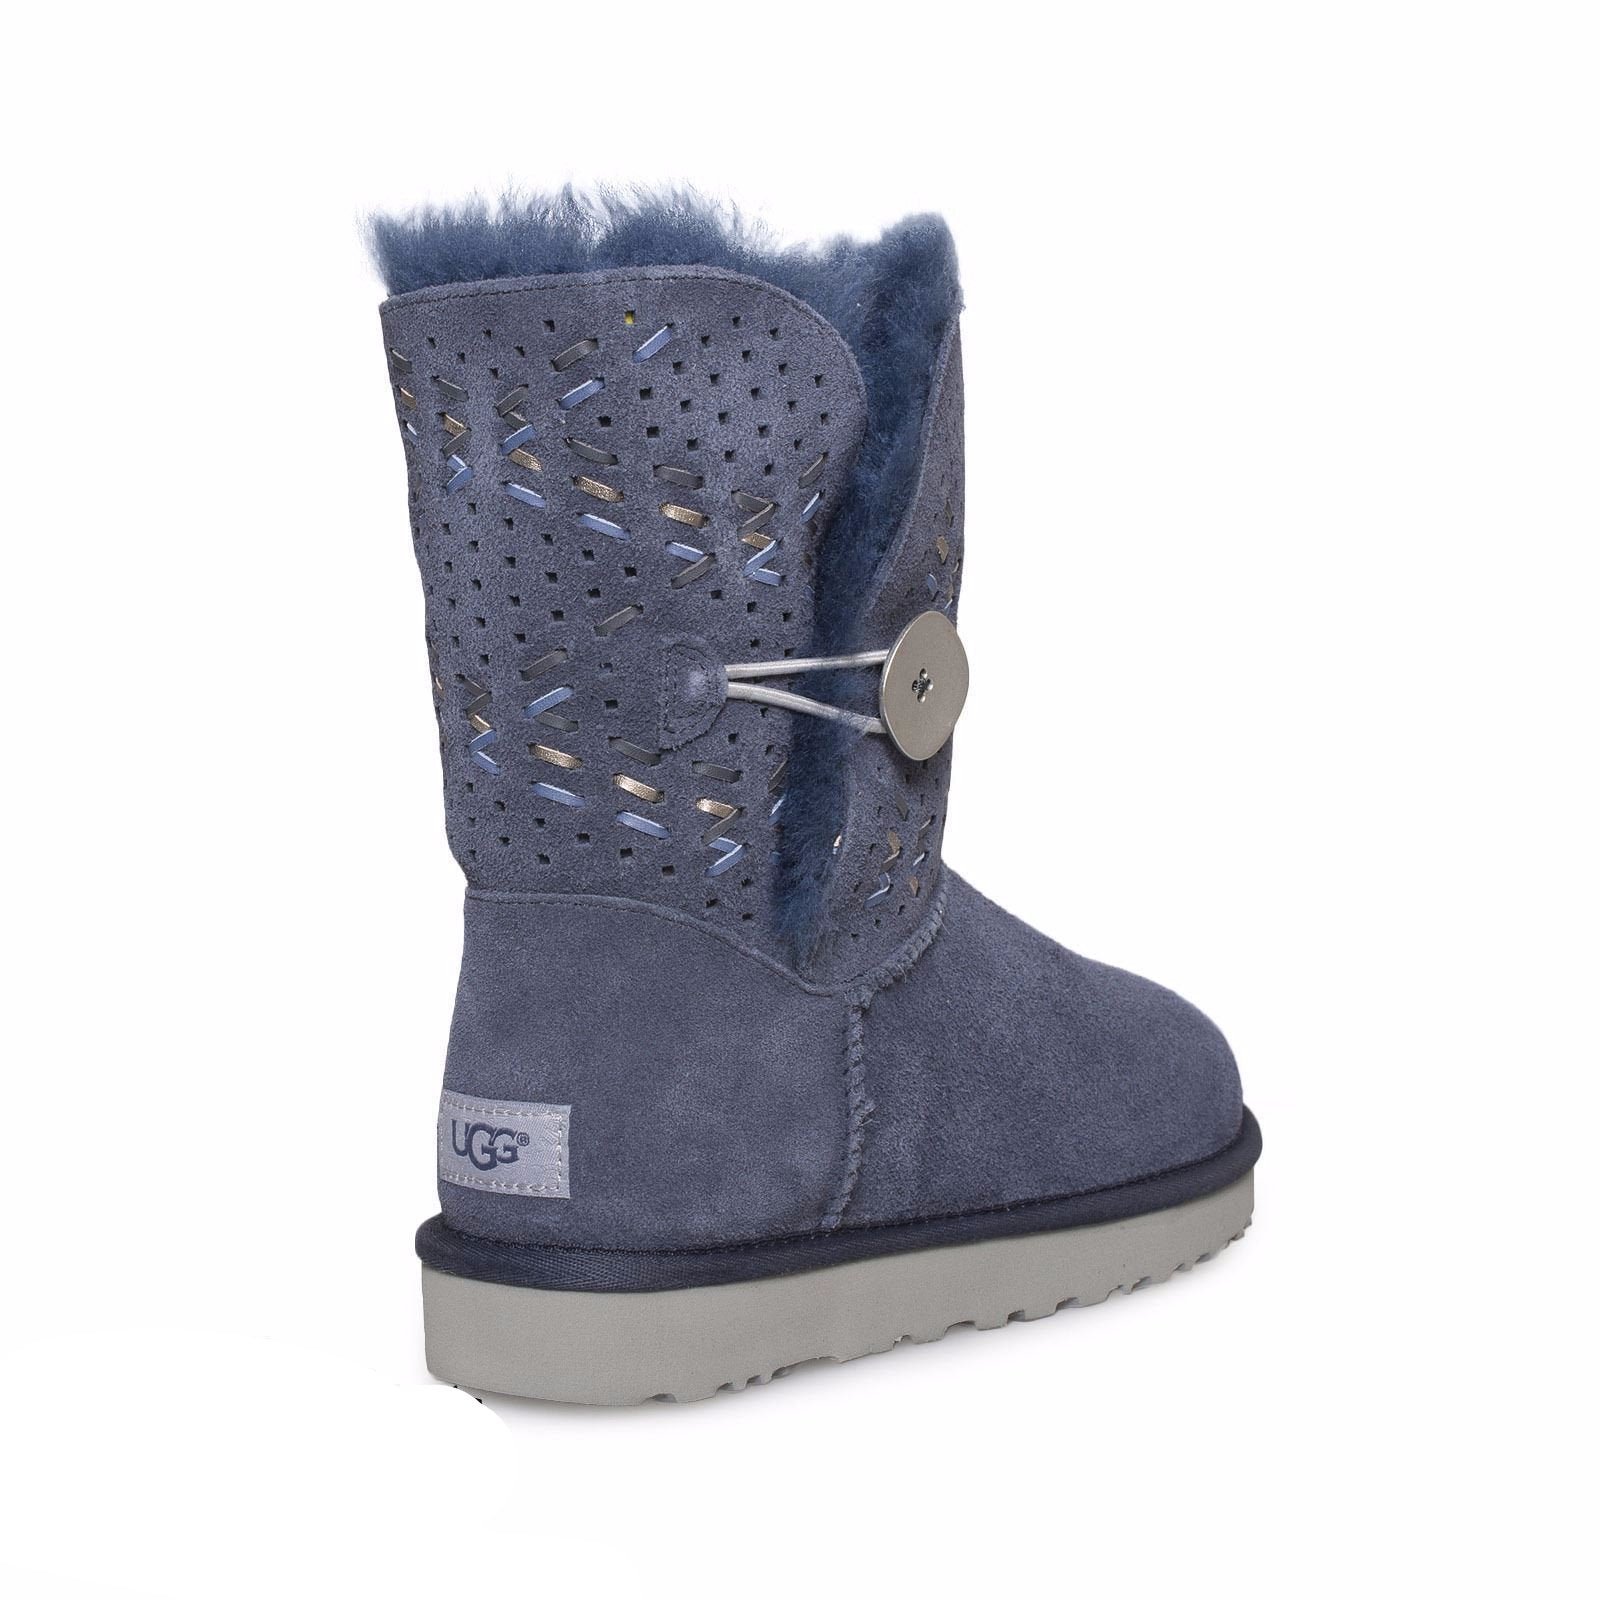 ugg bailey button tehuano nz